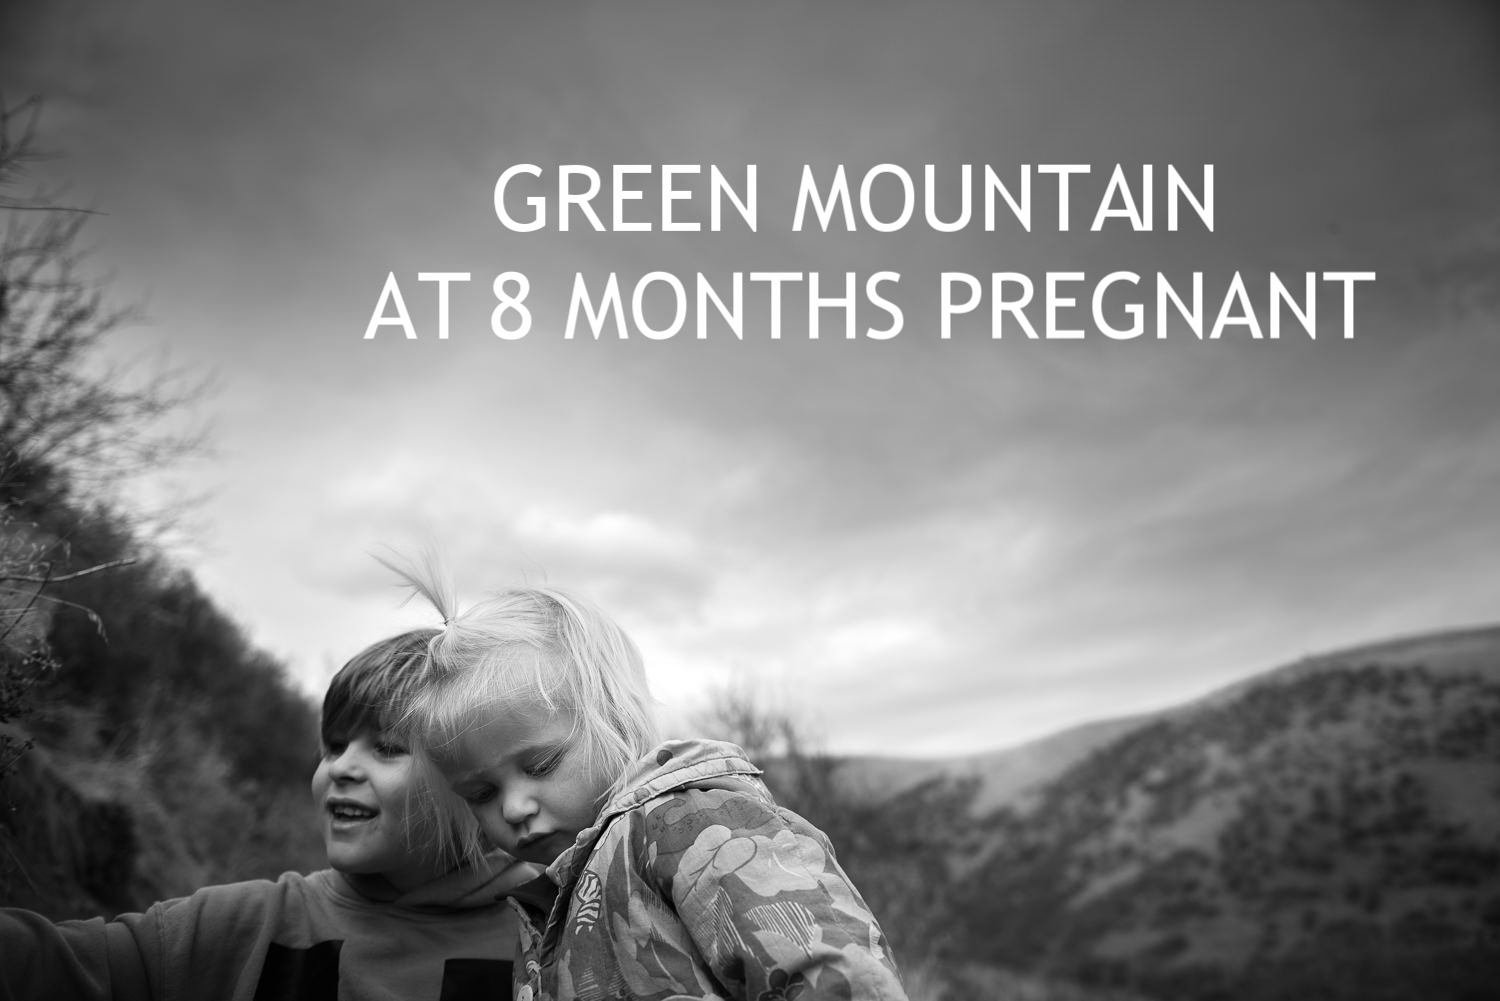 Green Mountain at 8 Months Pregnant